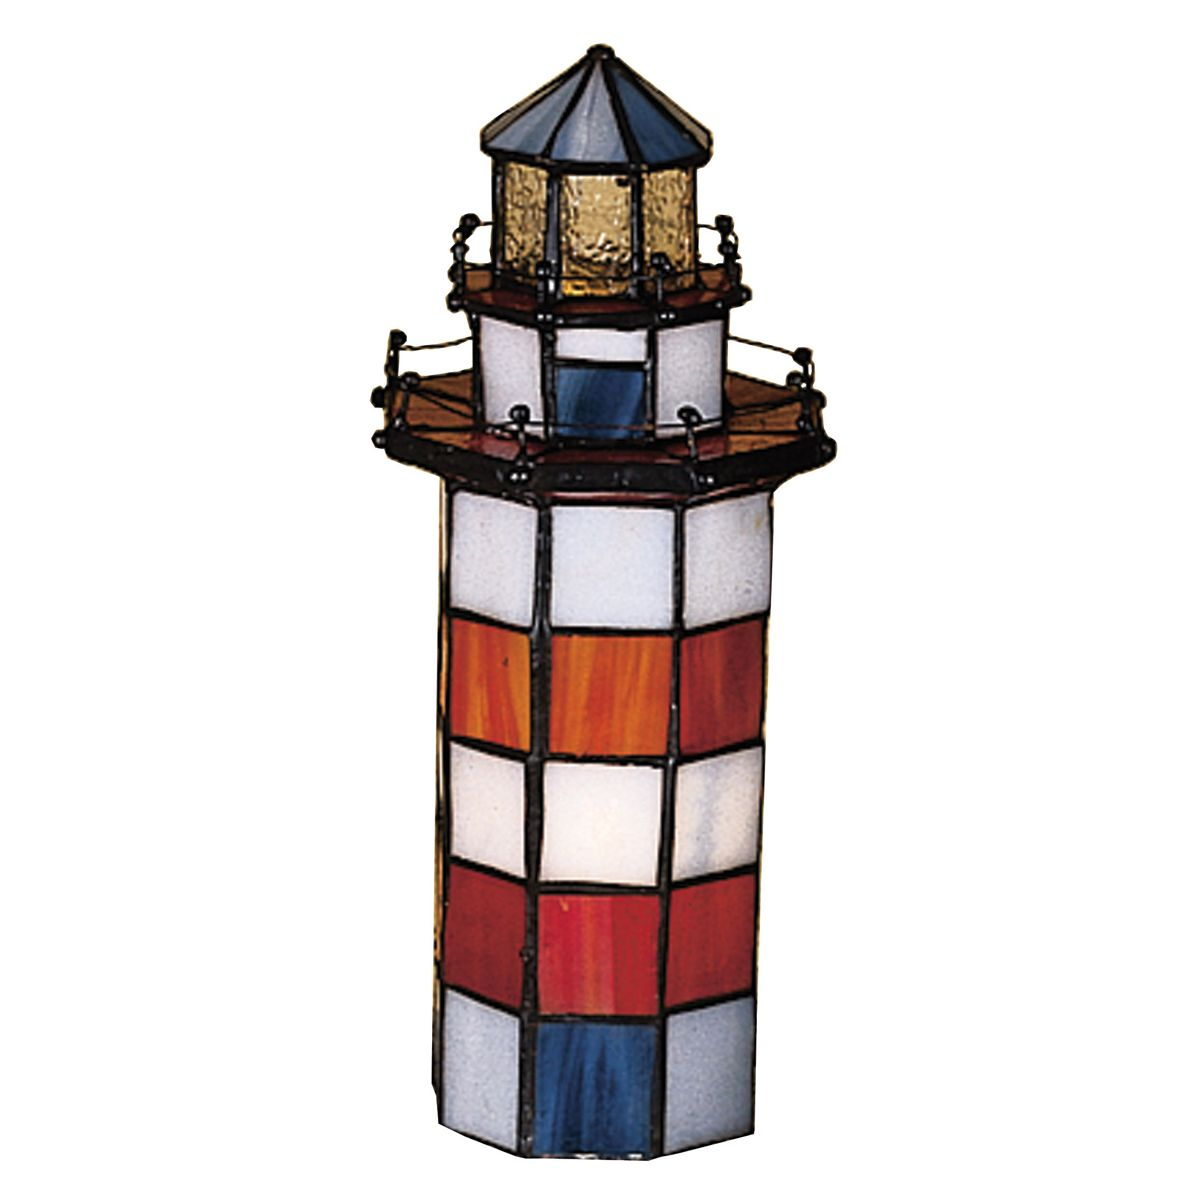 meyda lighting table lamps nautical the lighthouse accent hilton head lamp egg chair bunnings crate and barrel marilyn dark wood sofa best outdoor umbrellas clearance deck